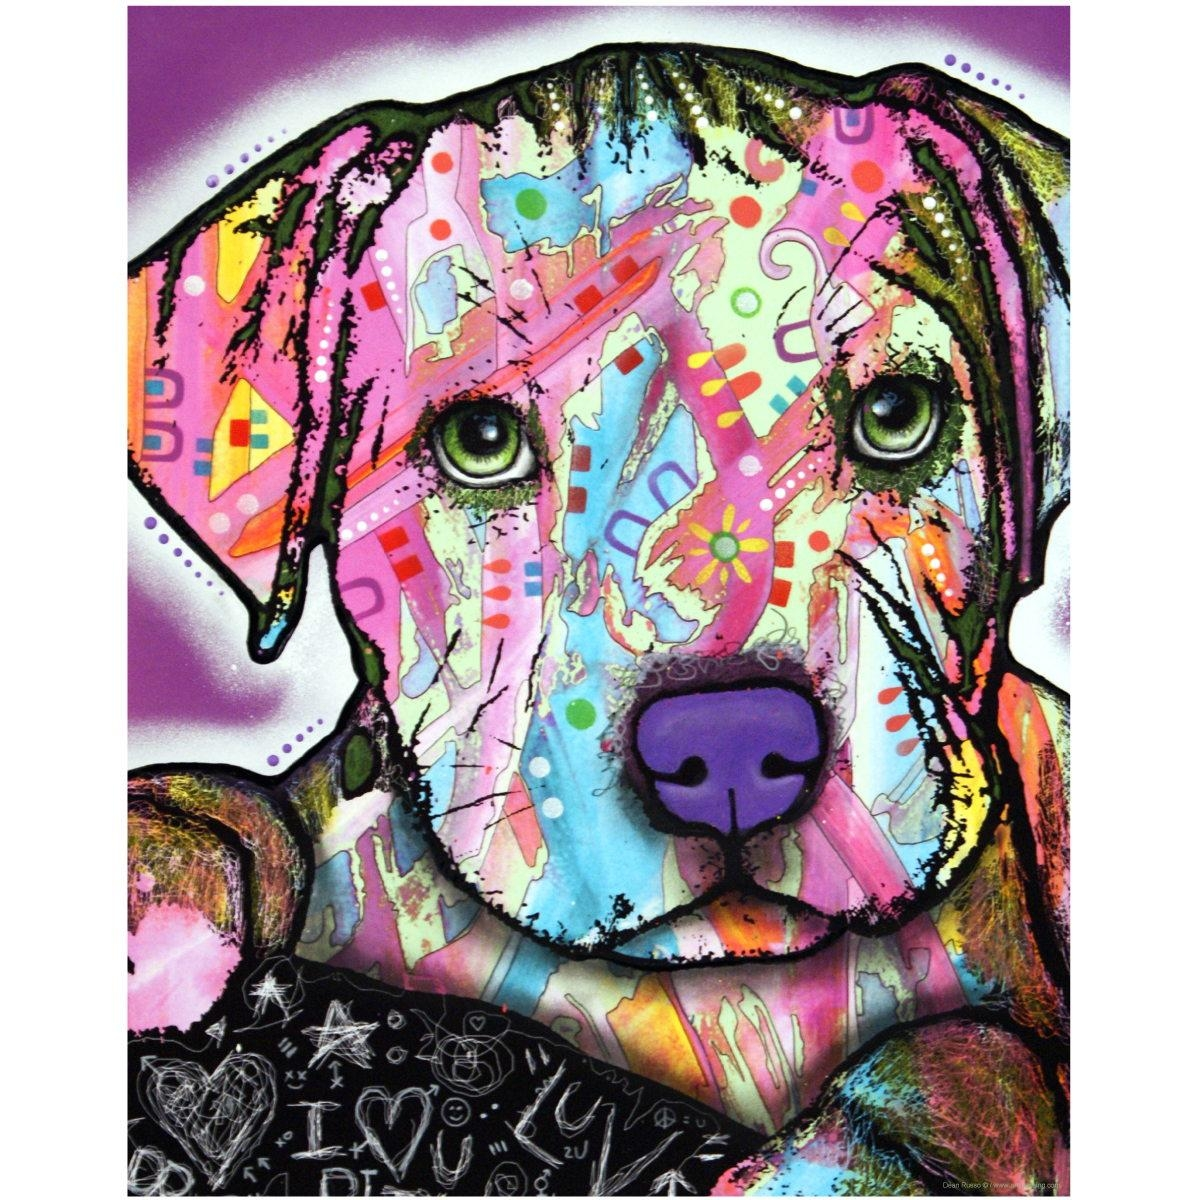 Baby Pit Bull Dog Dean Russo Pop Art Wall Decal | Pet Wall Decor Within Pitbull Wall Art (View 13 of 20)